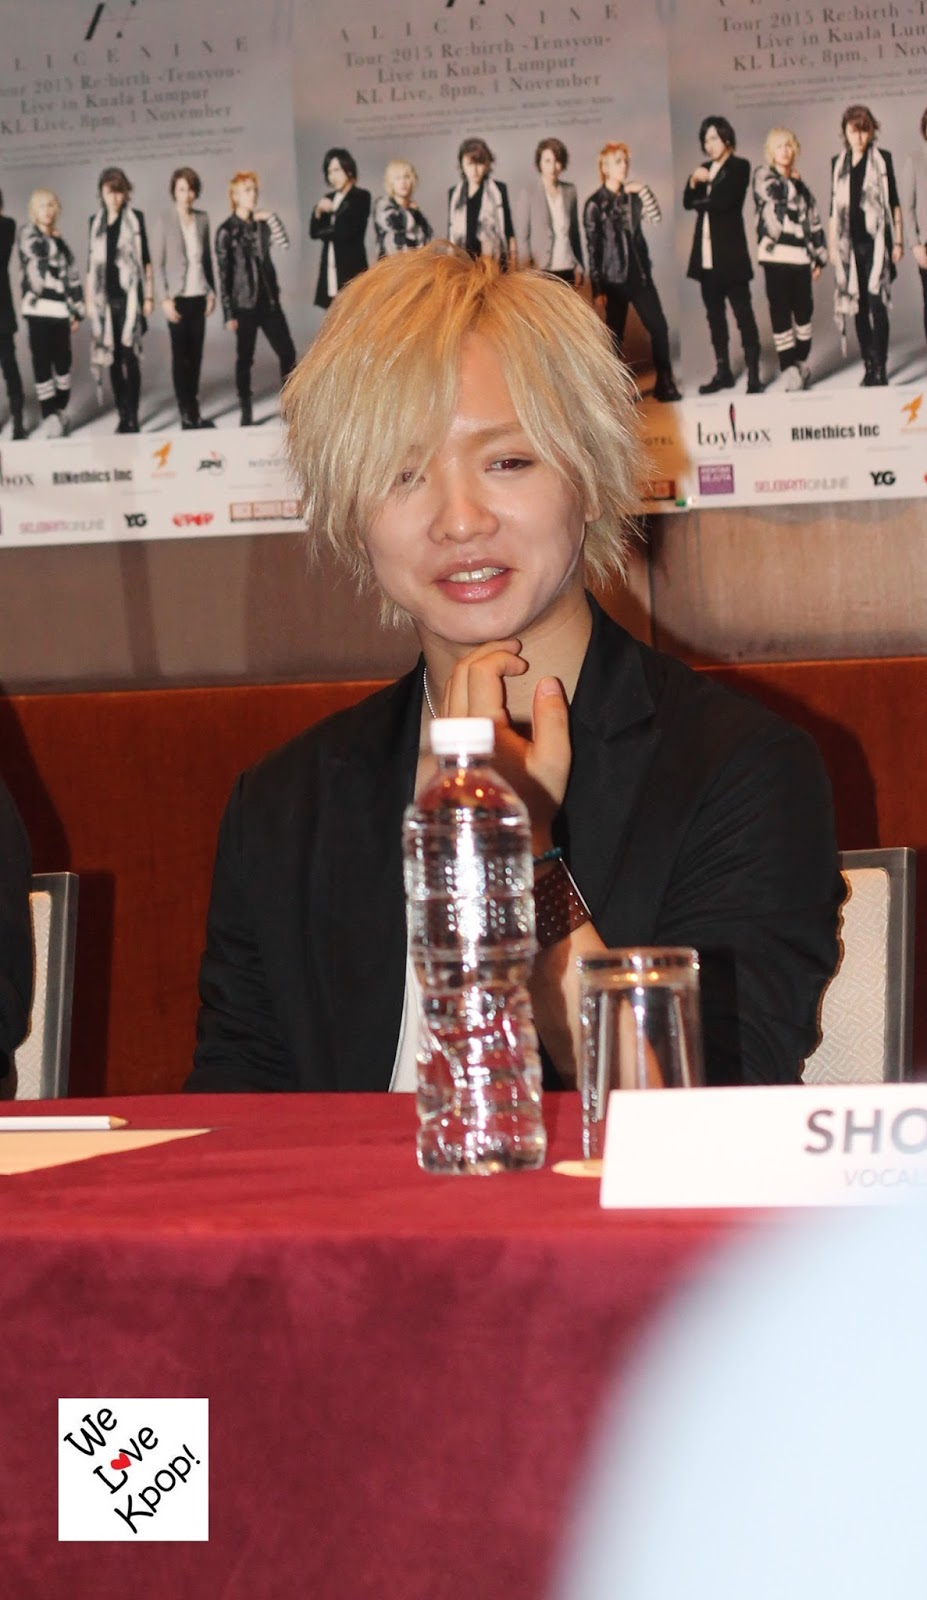 We Love Kpop!: [Press Conference] Alice Nine Tour 2015 Re